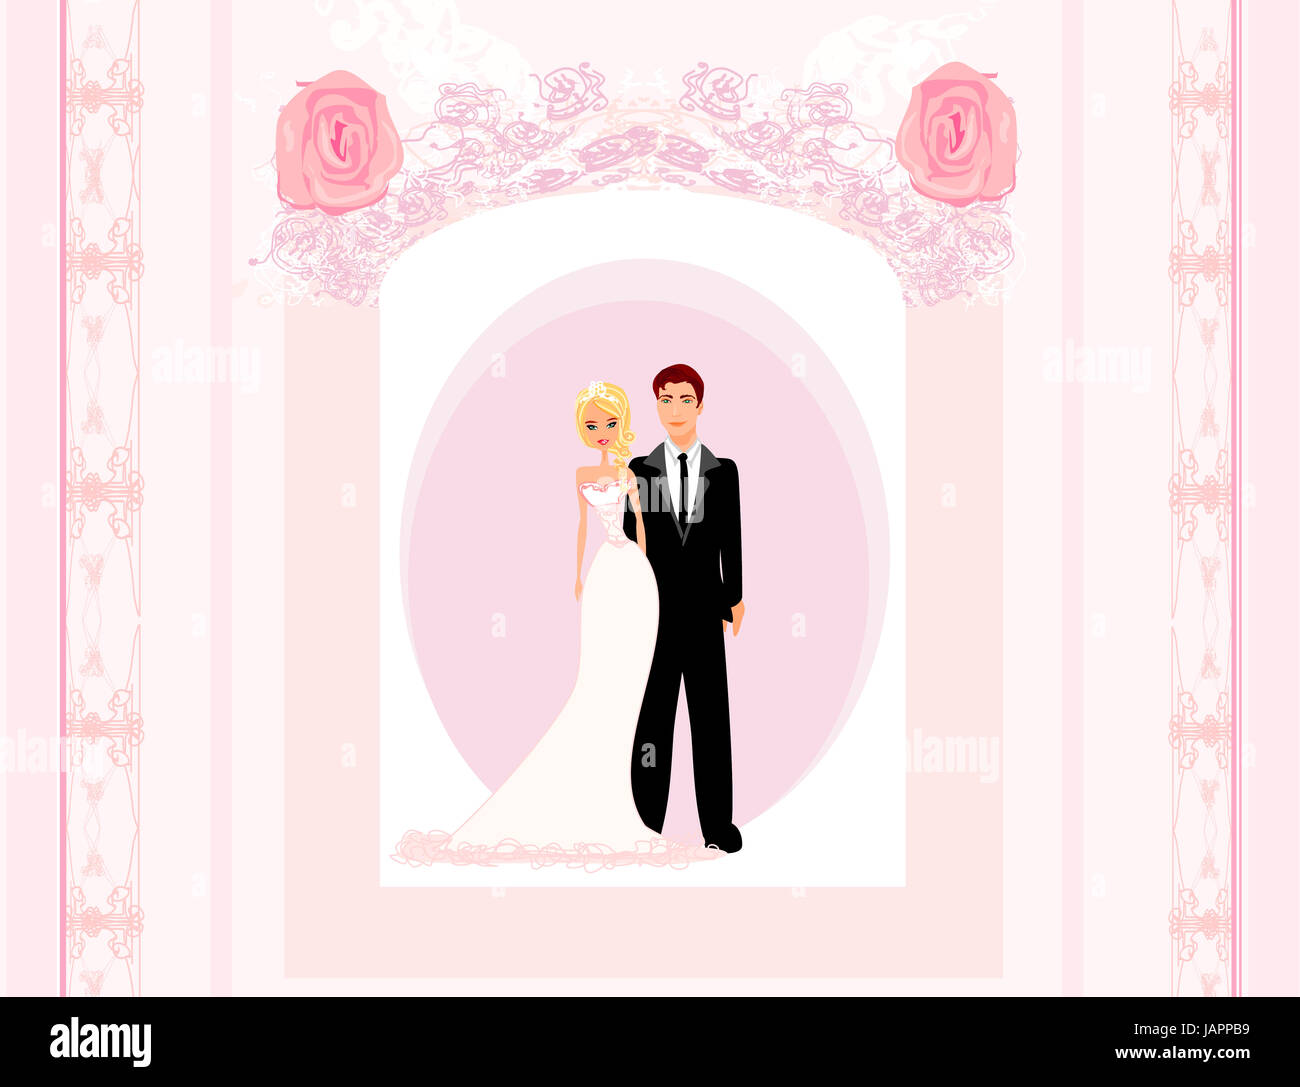 wedding invitation card with a cute couple Stock Photo: 144330013 ...